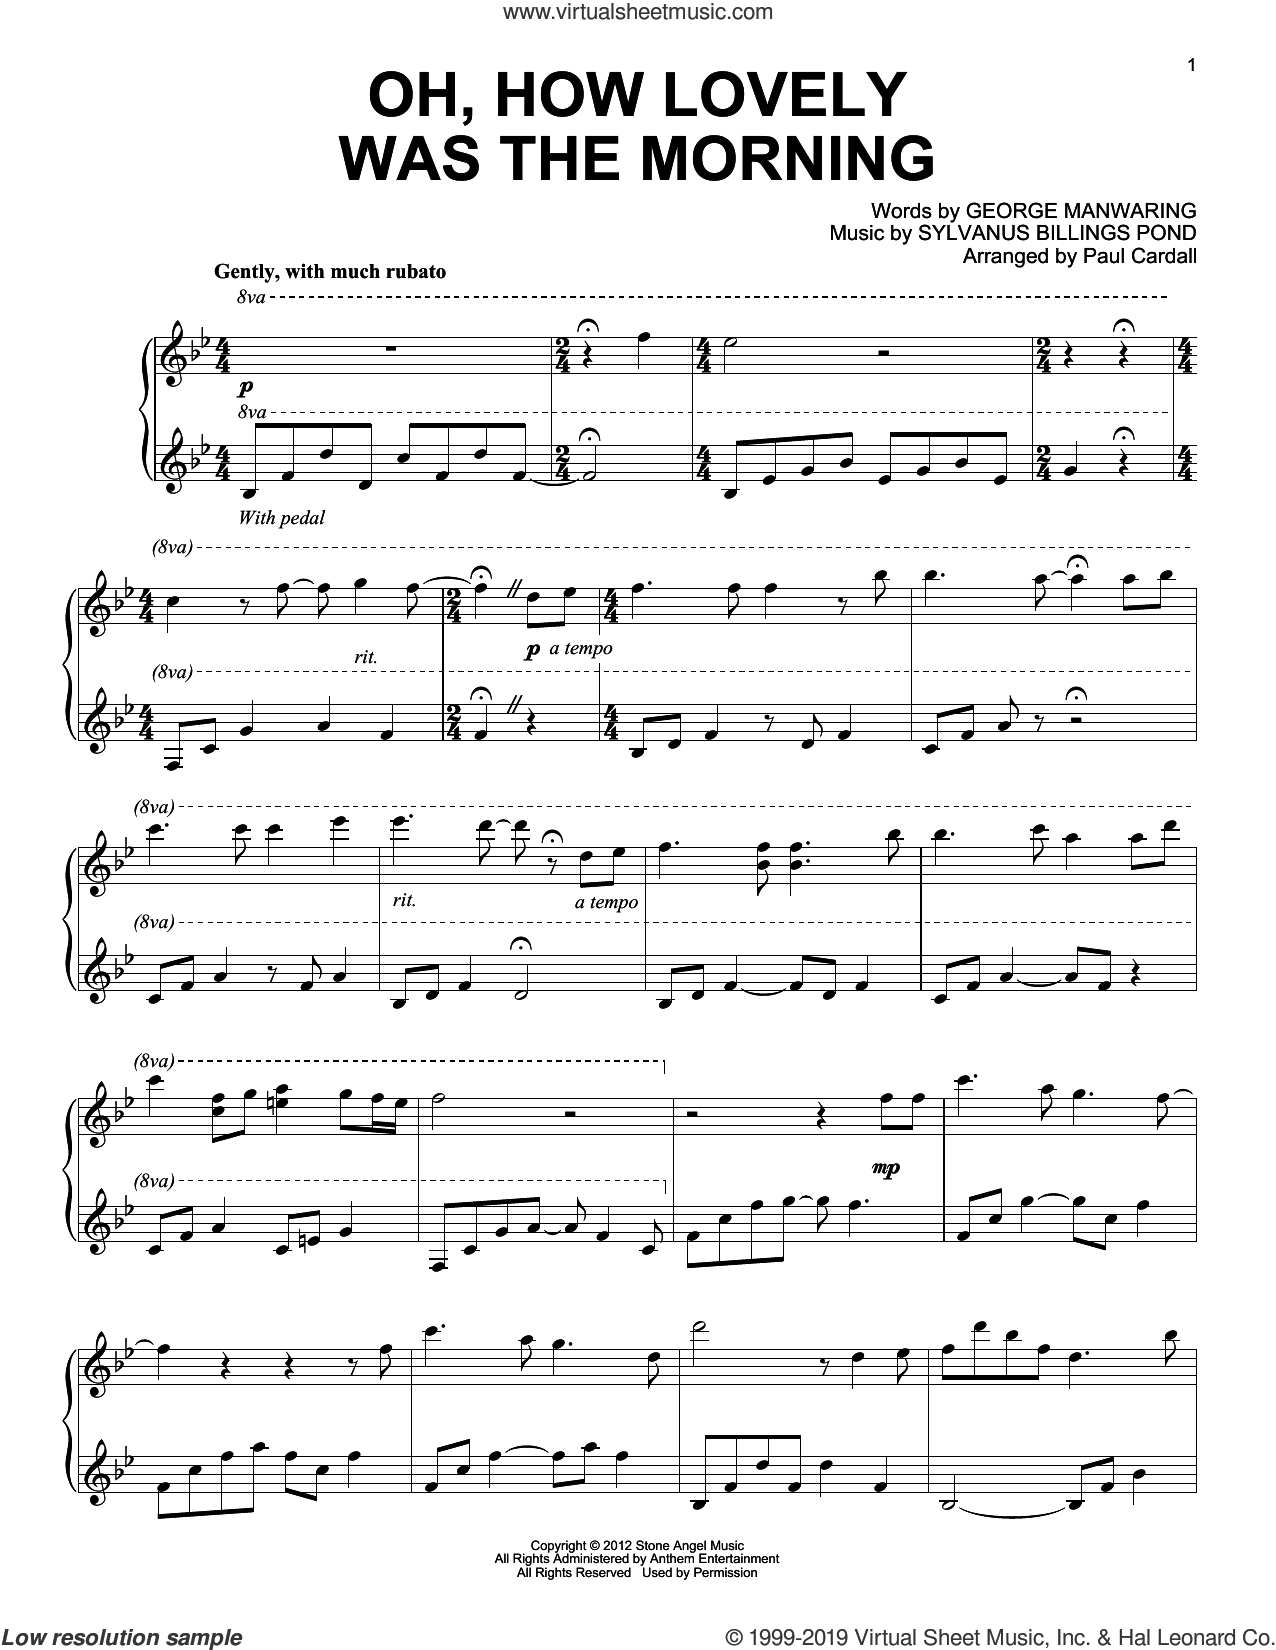 Oh, How Lovely Was The Morning (arr. Paul Cardall) sheet music for piano solo by Sylvanus Billings Pond, Paul Cardall and George Manwaring, intermediate skill level